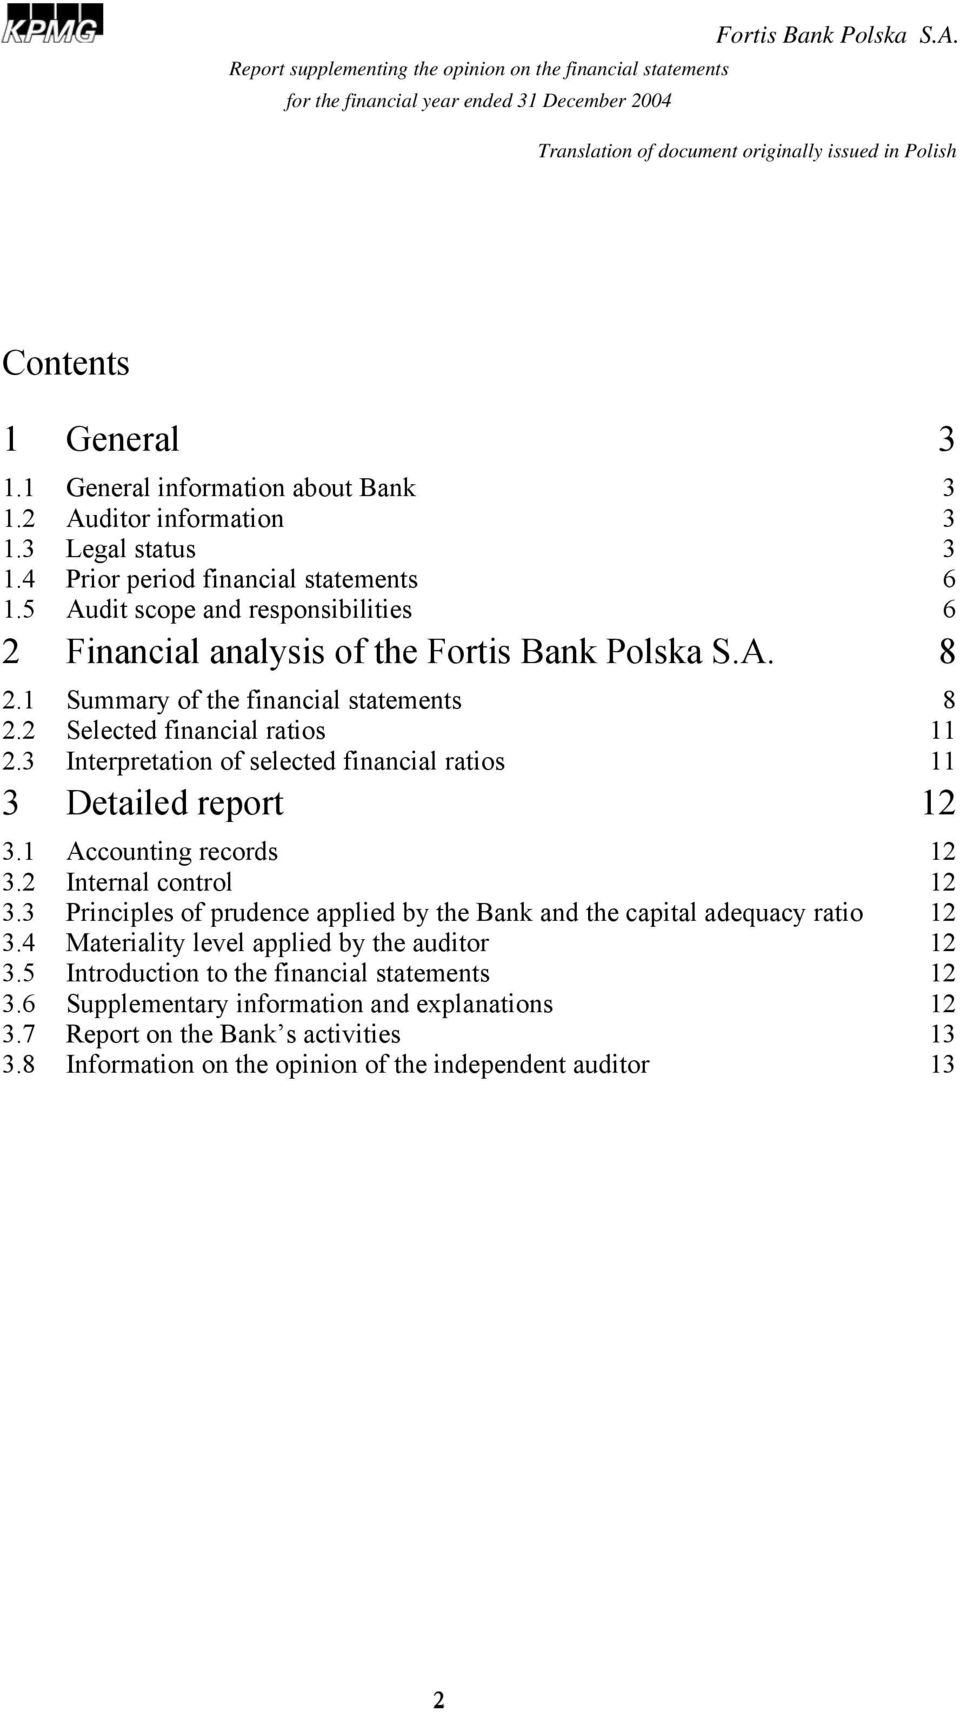 3 Interpretation of selected financial ratios 11 3 Detailed report 12 3.1 Accounting records 12 3.2 Internal control 12 3.